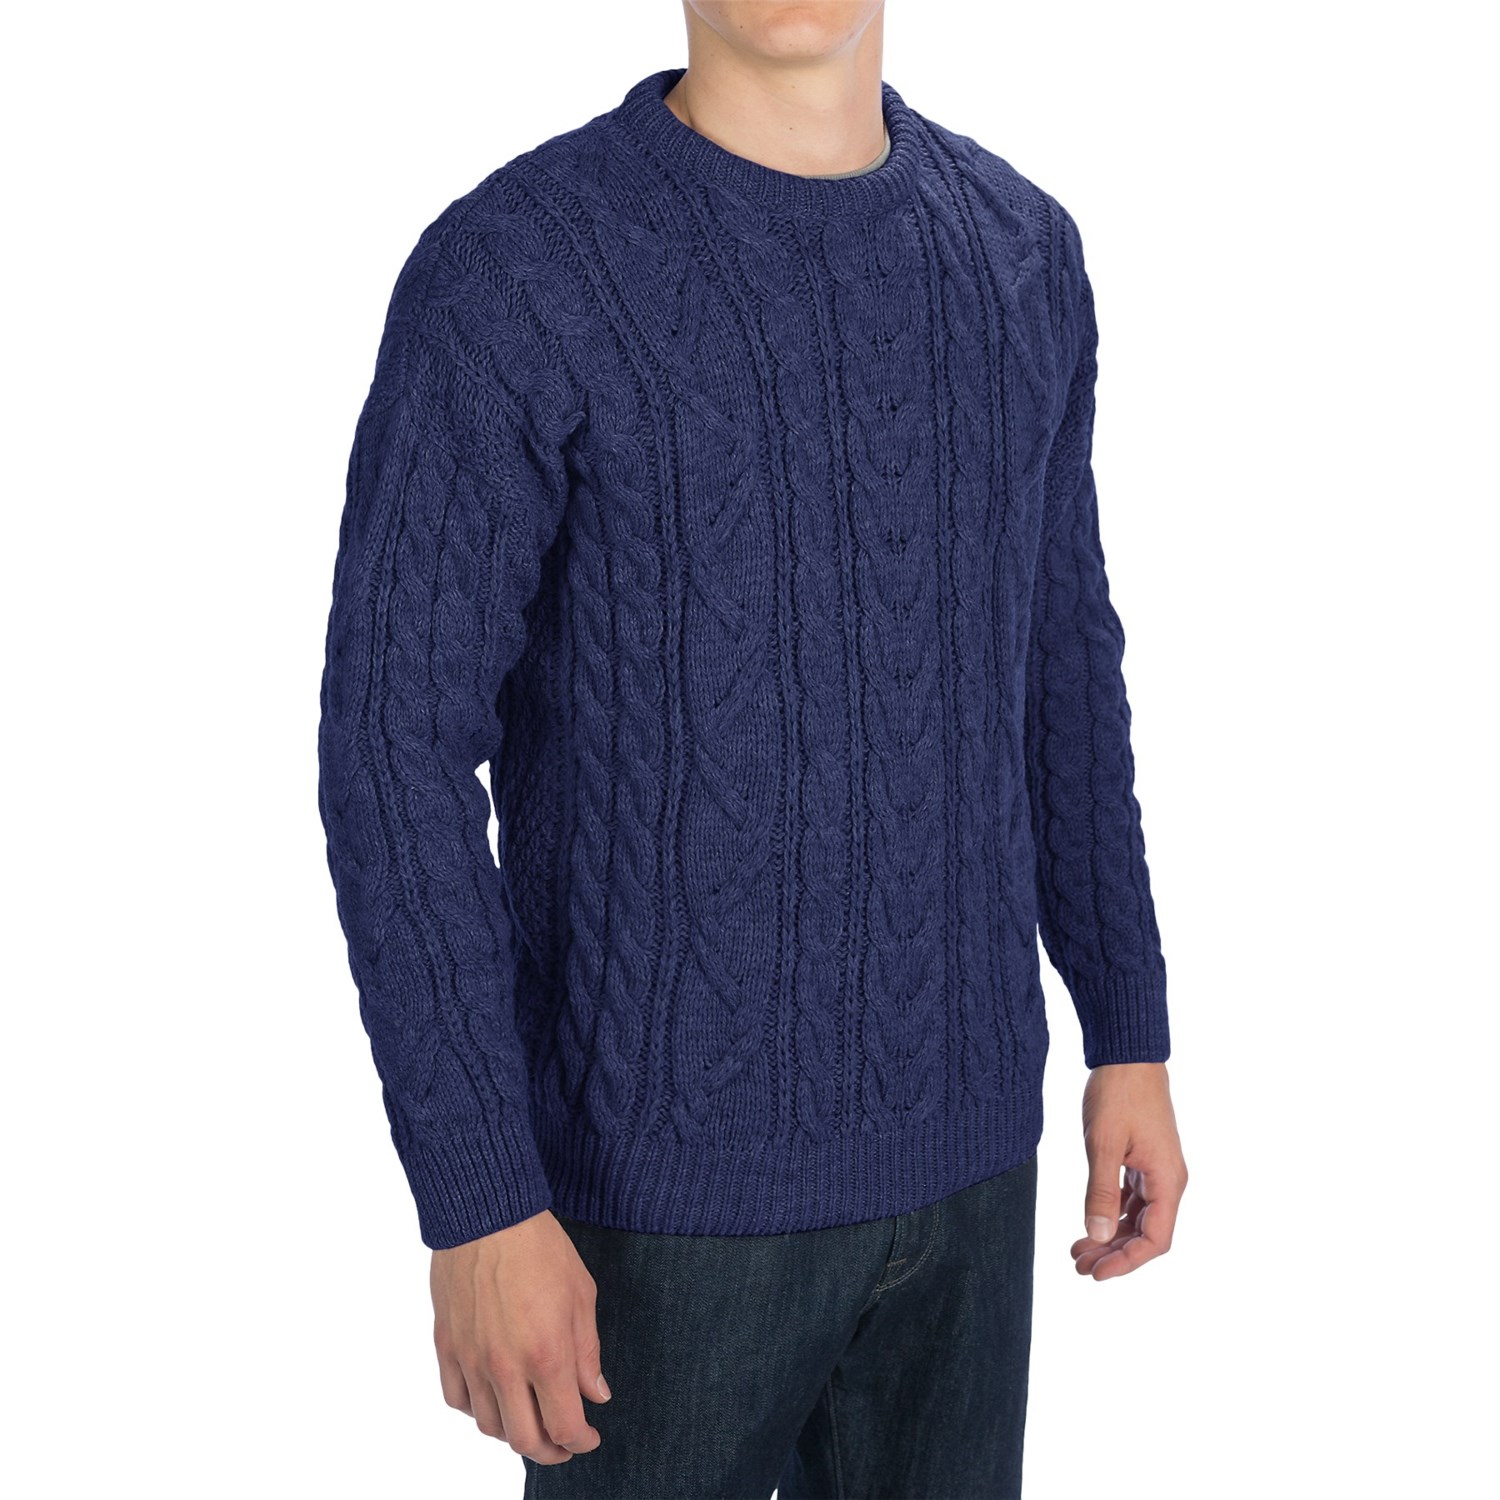 MEN EXTRA FINE MERINO V-NECK LONG-SLEEVE SWEATER $ $ please SIGN IN/REGISTER. Stretch Wool Jackets Customized For You: Easy Care Shirts Polo Shirts Sweatshirts and Sweatpants Sweaters Extra Fine Merino Cashmere Lambswool Fashion Cardigan Uniqlo U New. Fleece Casual Shirts Dress Shirts Jeans Pants Chino Pants Shorts.